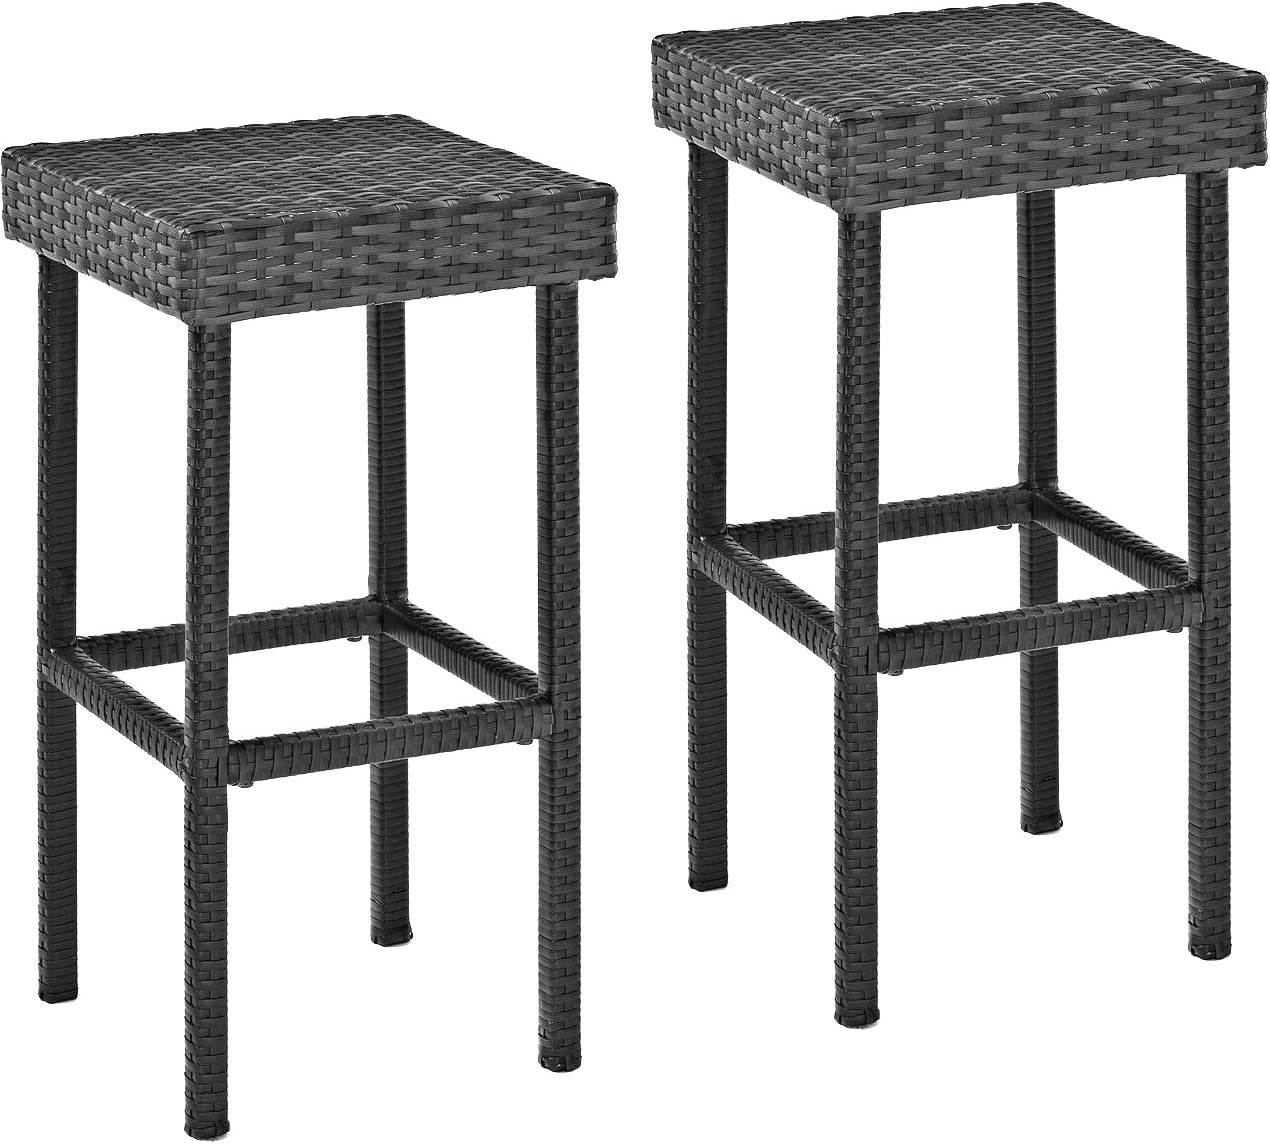 Crosley Furniture Palm Harbor Outdoor Wicker 29-inch Bar Height Stools – Grey Set of 2